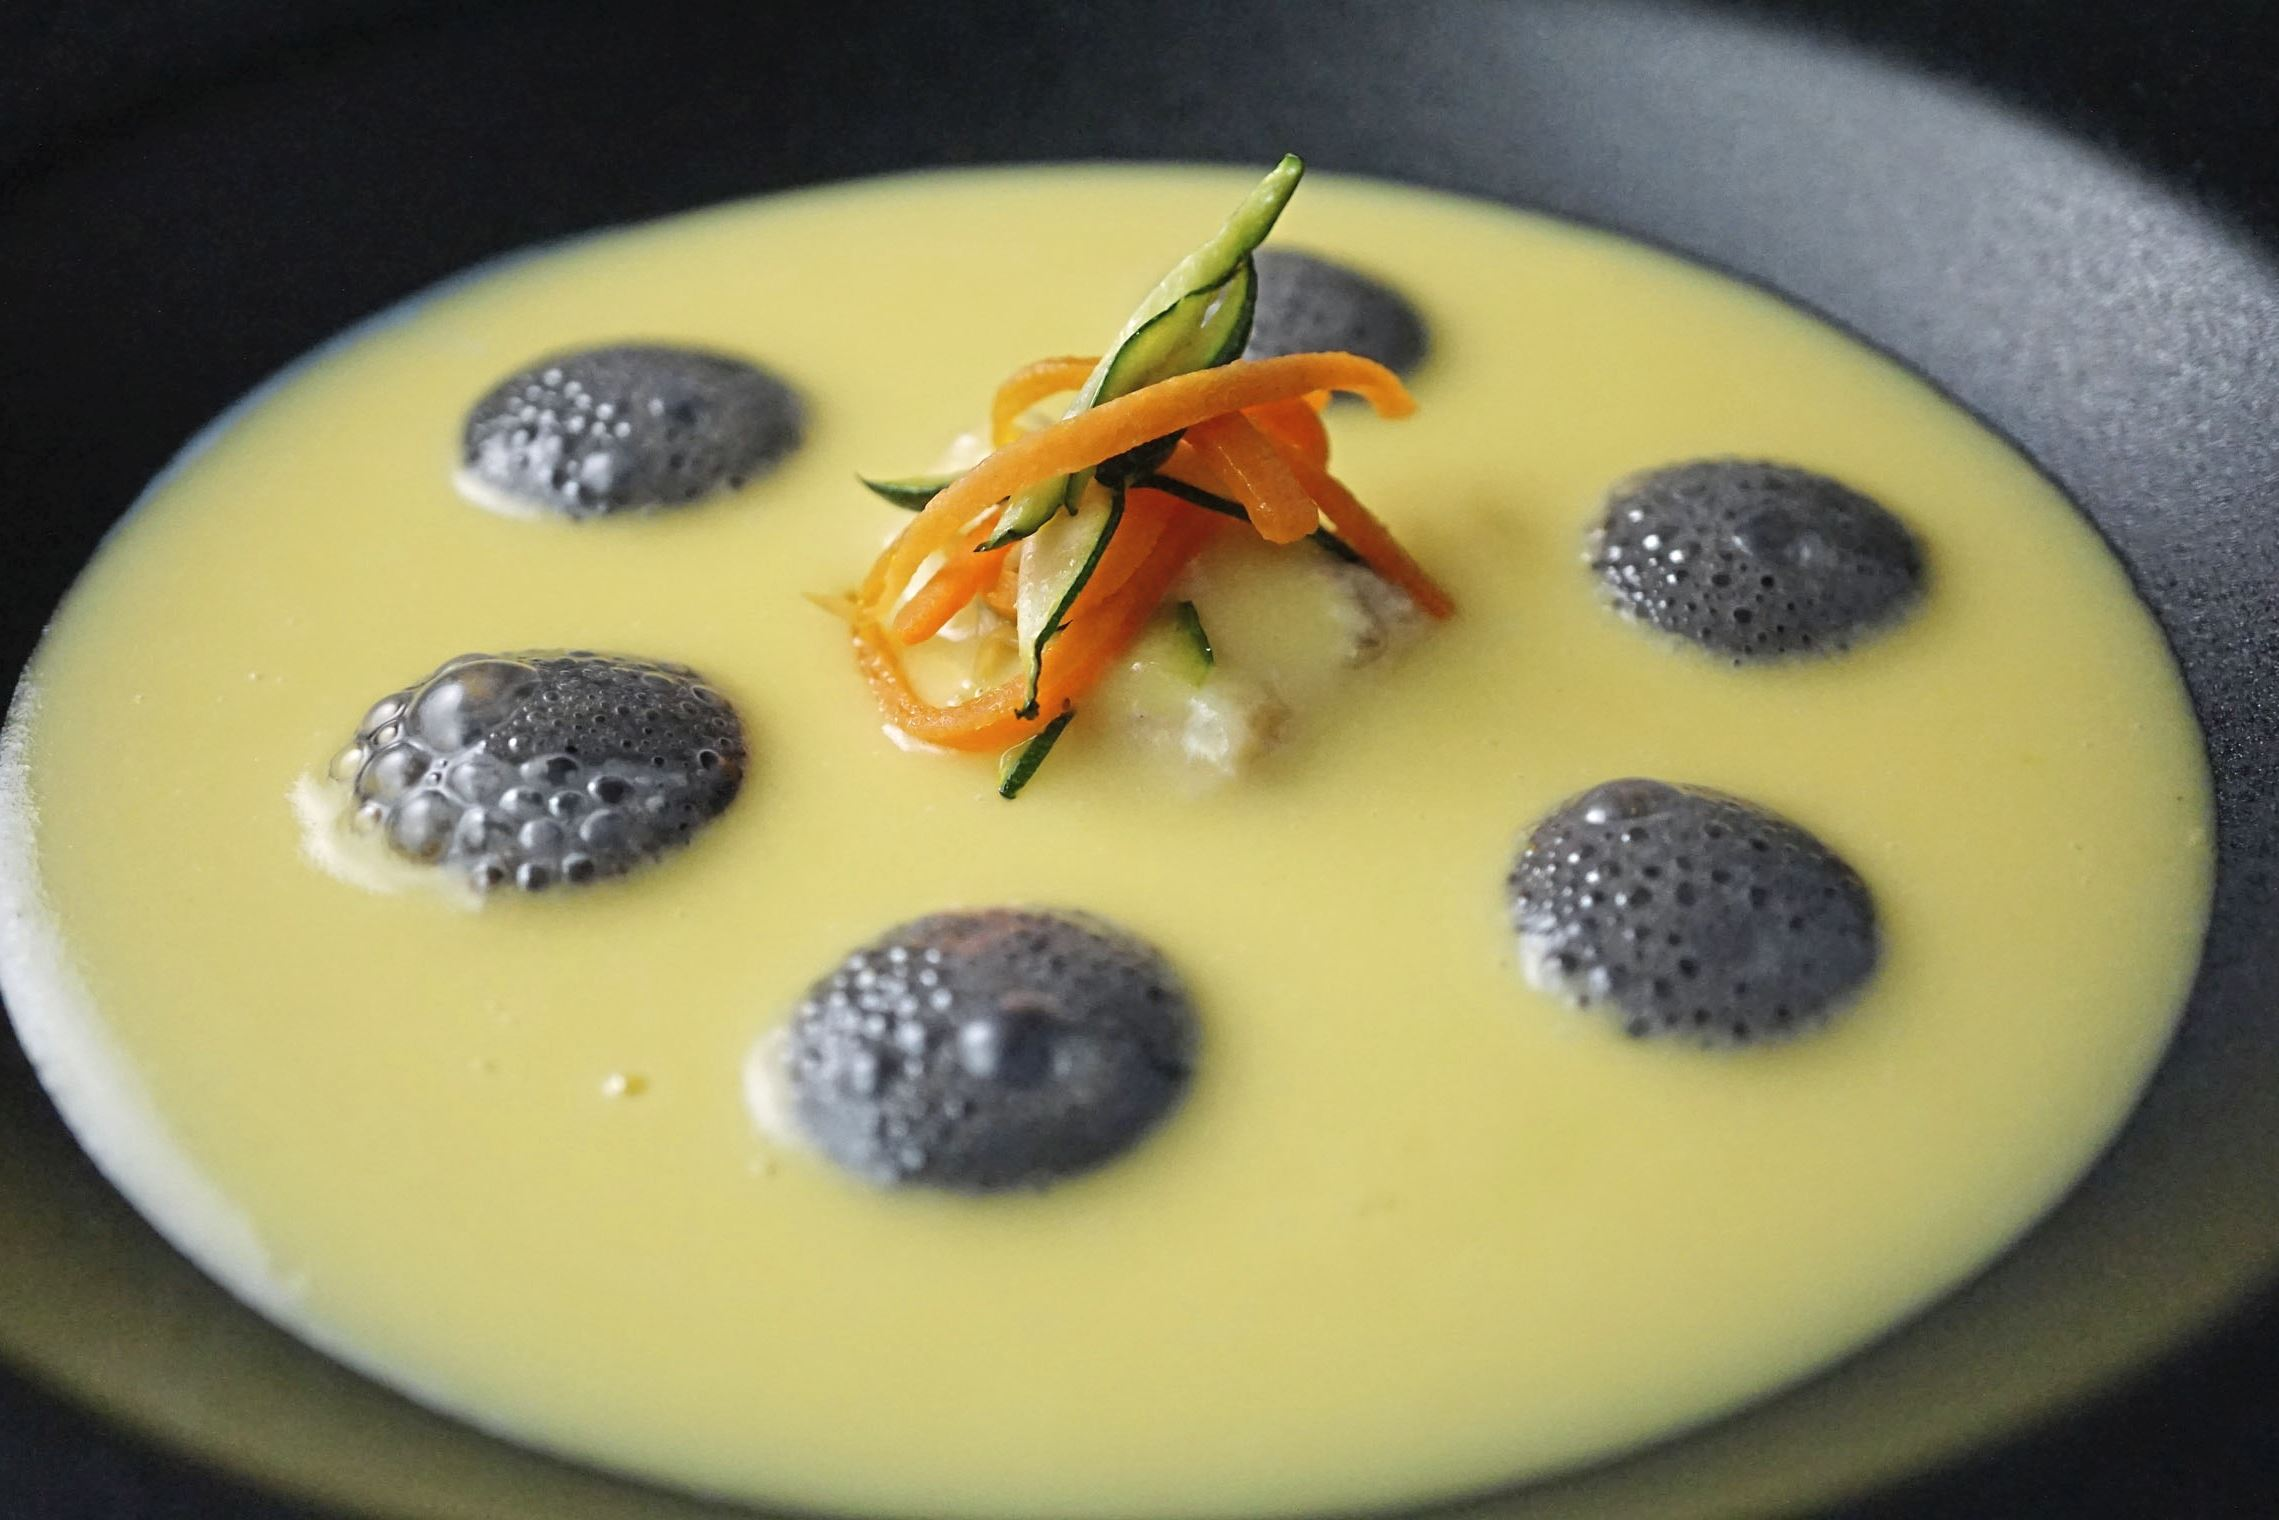 """Saffron Potato Soup with Baccala Vellutata di Patate con Baccala al Nero di Seppia (Creamed Saffron Potato Soup with Baccala and Squid Ink Foam served with Julienne Vegetables), one of the """"seven fishes"""" to be served on Christmas Eve at Senti in Lawrenceville."""